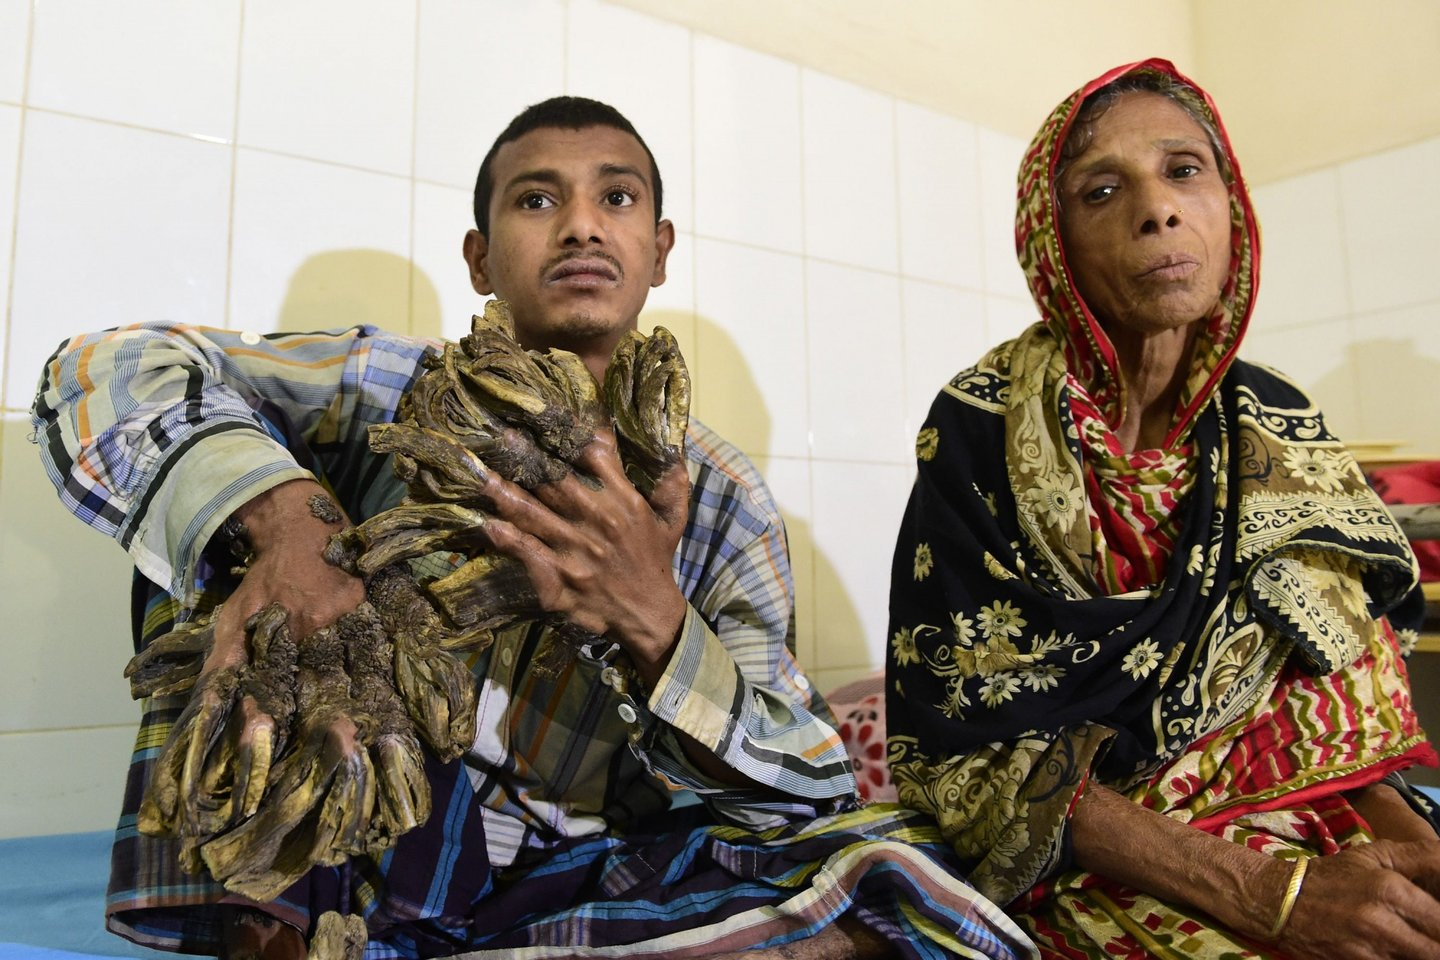 """Abul Bajandar (L), 26, dubbed """"Tree Man"""" for massive bark-like warts on his hands and feet, sits at Dhaka Medical College Hospital in Dhaka on January 31, 2016. A Bangladeshi autodriver dubbed """"Tree Man"""" for massive bark-like warts on his hands and feet will finally have surgery to remove the growths that first appeared 10 years ago, a hospital said on January 31, 2016. The massive warts, which first started appearing when he was a teenager but began spreading rapidly four years ago, have been diagnosed as epidermodysplasia verruciformis, an extremely rare genetic skin disease that makes the person vulnerable to warts. AFP Photo/ Munir uz ZAMAN / AFP / MUNIR UZ ZAMAN (Photo credit should read MUNIR UZ ZAMAN/AFP/Getty Images)"""